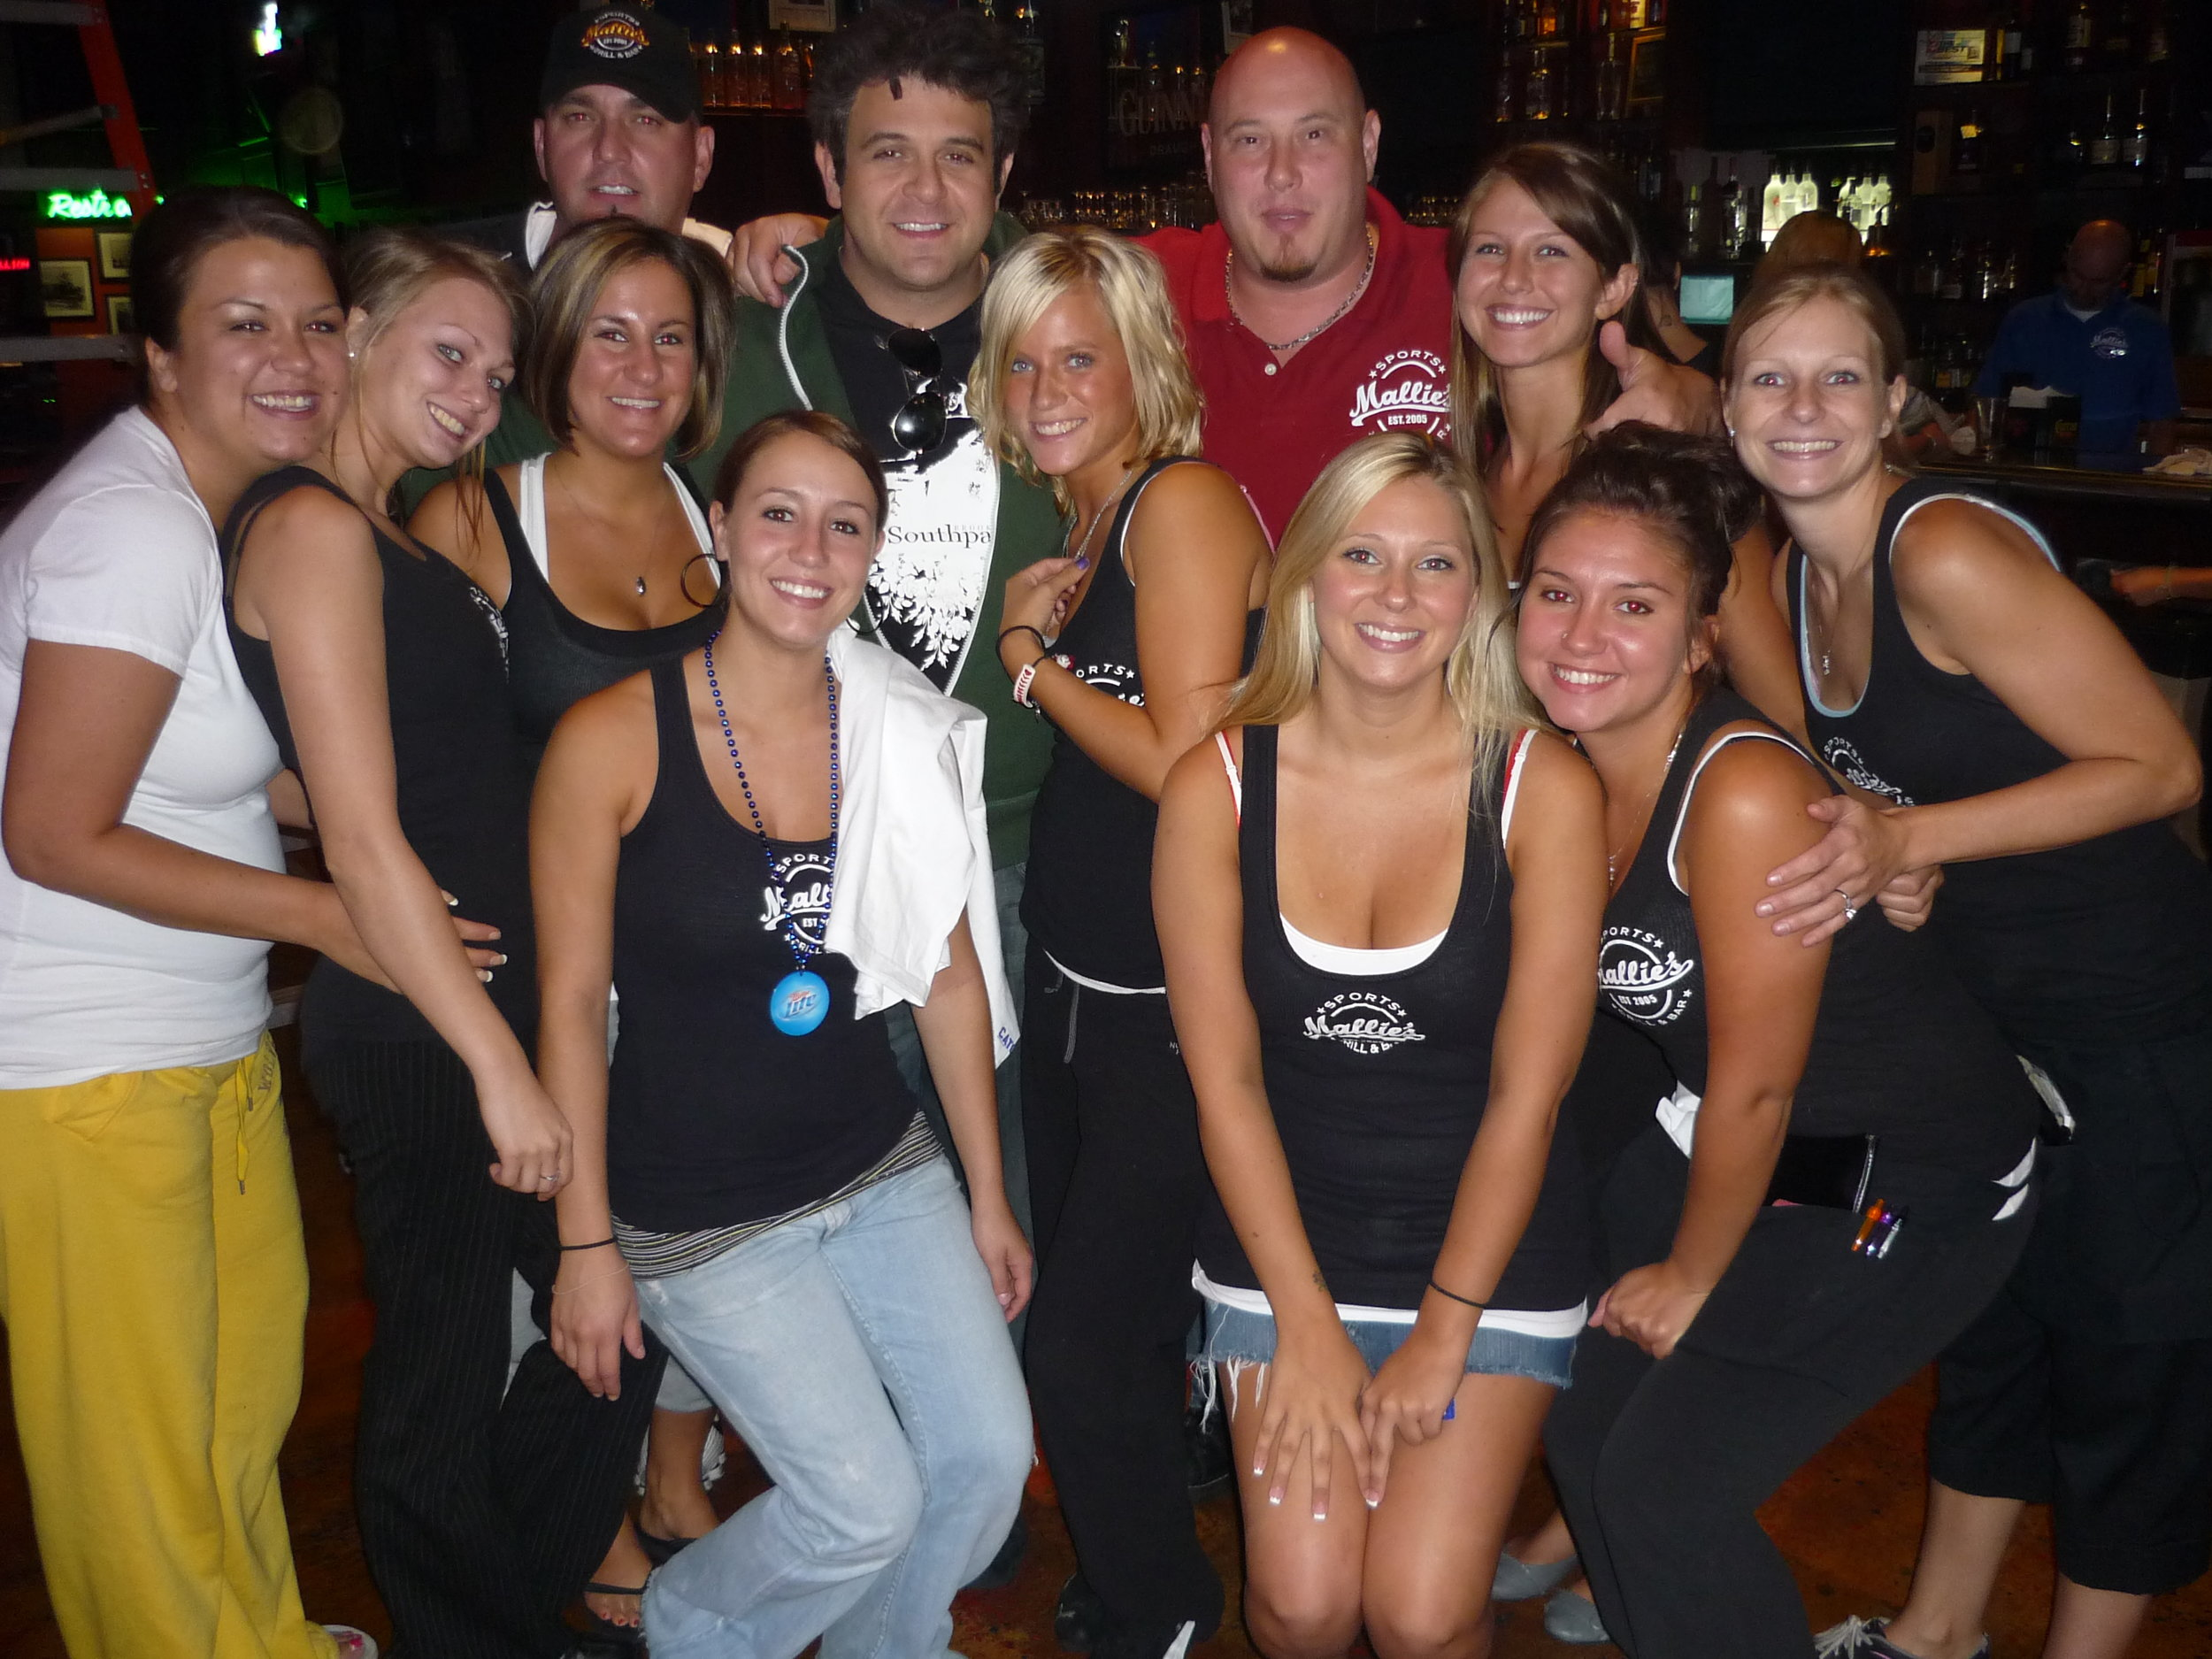 Man Vs Food's Adam Richman, Mallie's Owner/Founder Steve Mallie and staff during the epic episode of the 190 pound burger, featured on the travel show in 2009, see below!